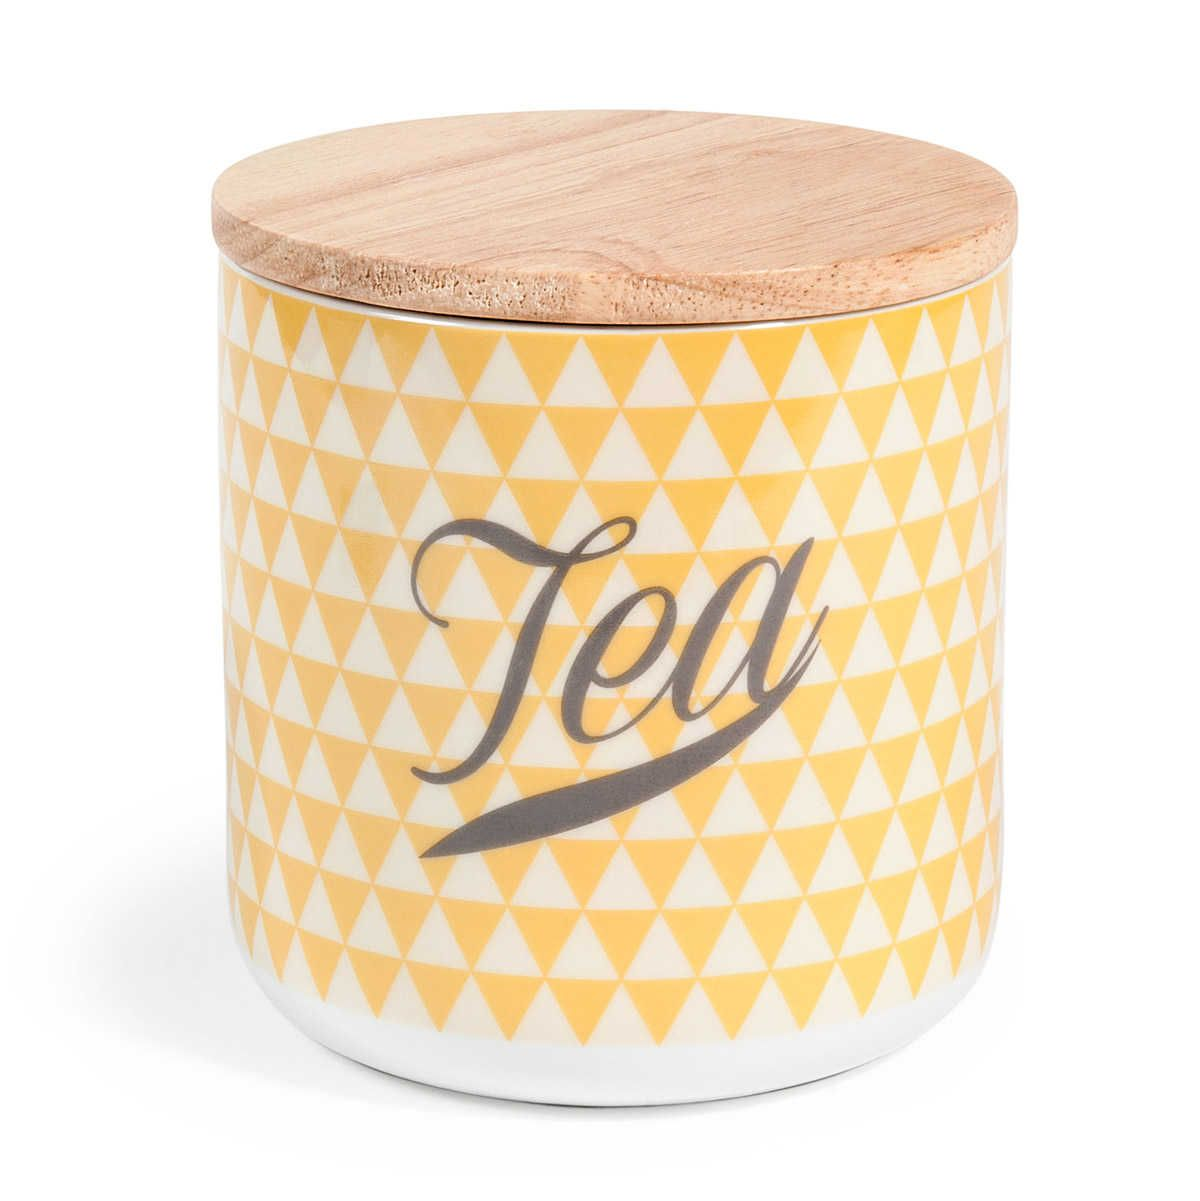 Cheap Kitchen Decor Sets: Tea Canisters, Vintage Kitchen Decor